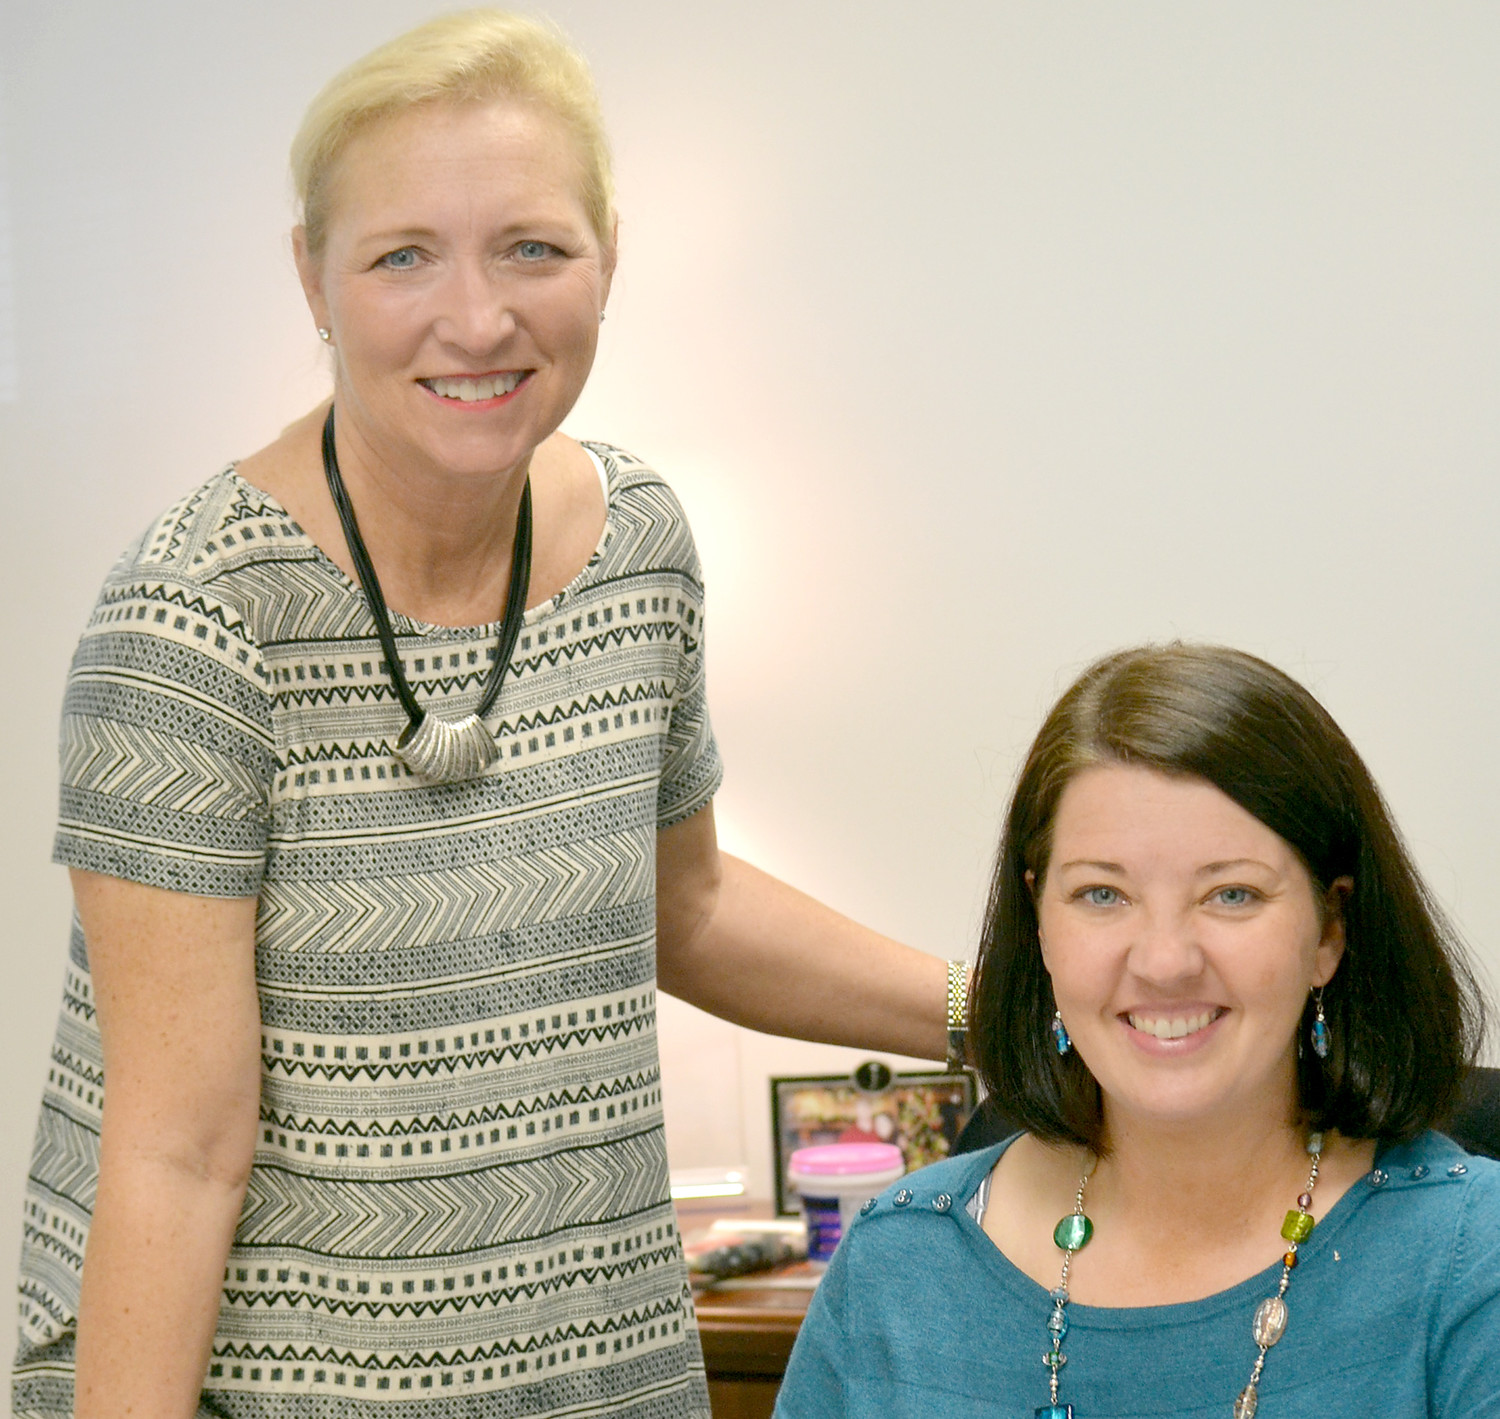 JENNIFER PENNELL-ASLINGER, seated, is the new Junior Achievement of the Ocoee Region president. She's pictured with part-time employee Melissa Gunnell.